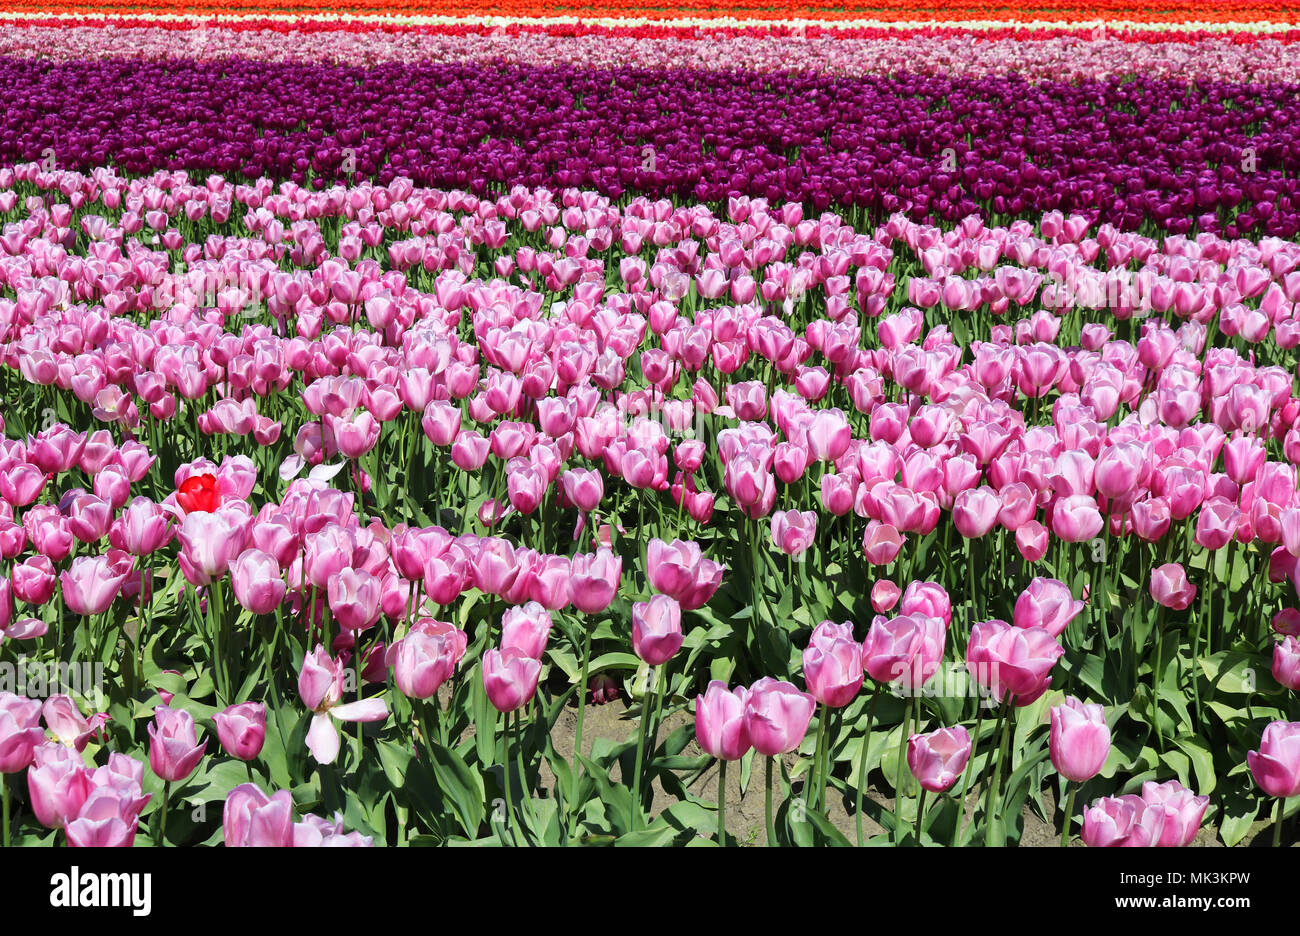 Tulips growing in a field during the Skagit Valley Tulip Festival in Mount Vernon, WA, USA.  One red tulip is in the midst of the pink tulips in the f Stock Photo